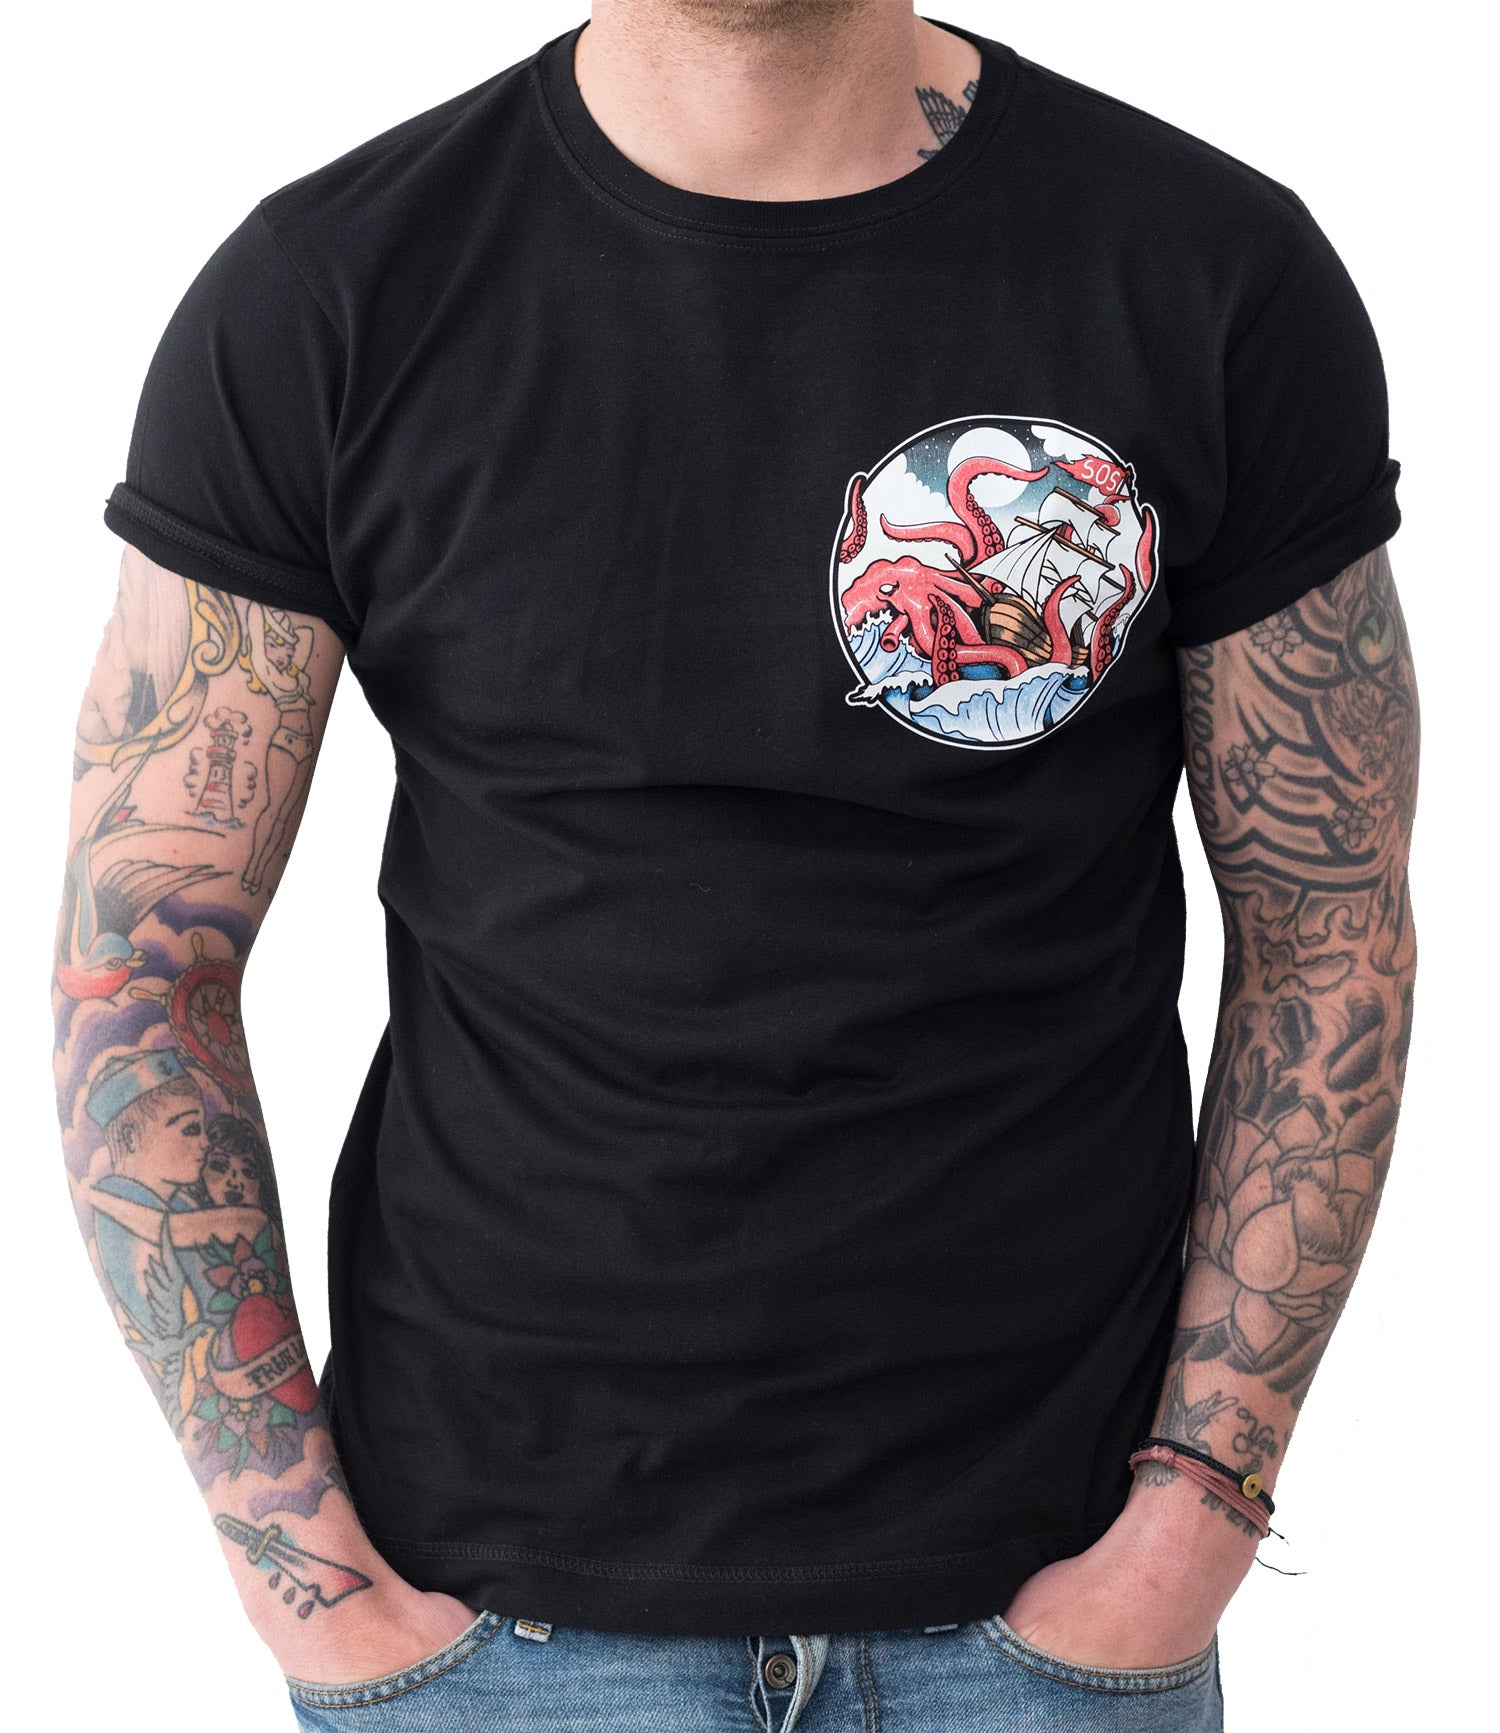 Kraken Attack Black T Shirt Save Our Souls Clothing